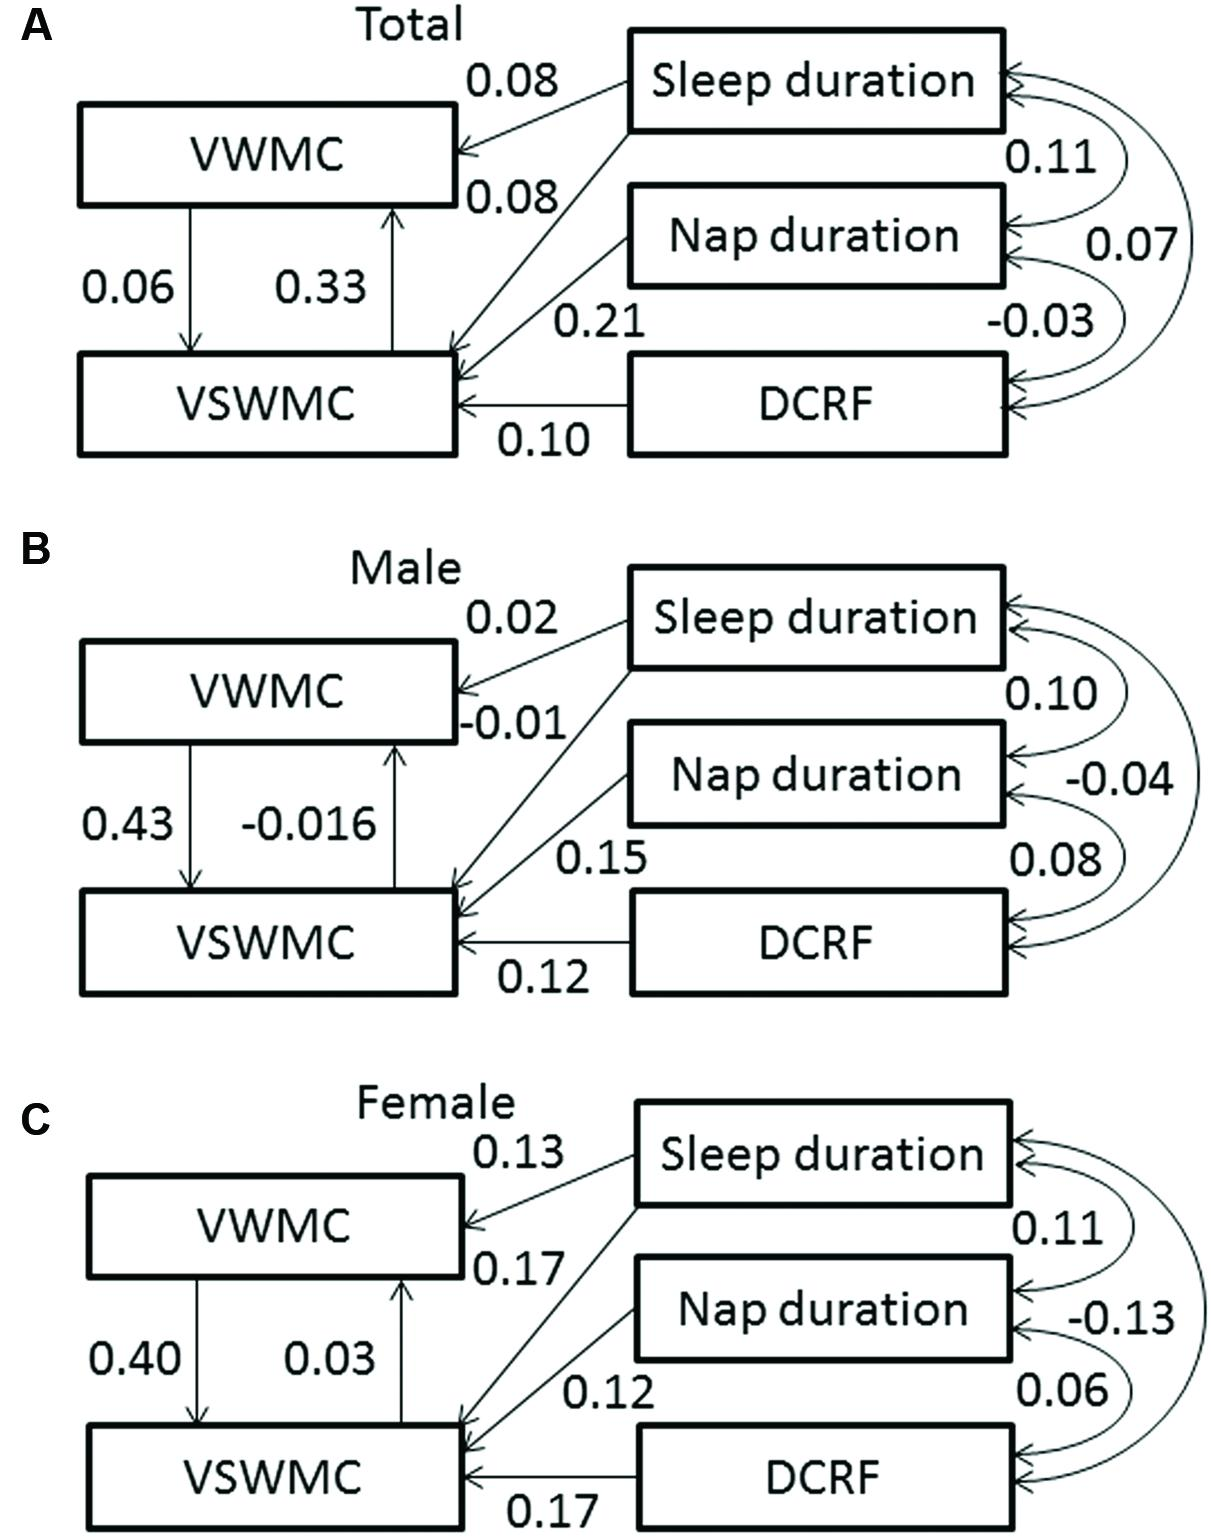 gender differences in verbal working memory The present study measured verbal and spatial working memory for 15 males and 48 females males were found to have both a larger verbal memory and a larger spatial memory participants then read texts that either presented the information in both the text and diagram, or in only the text or only the diagram.